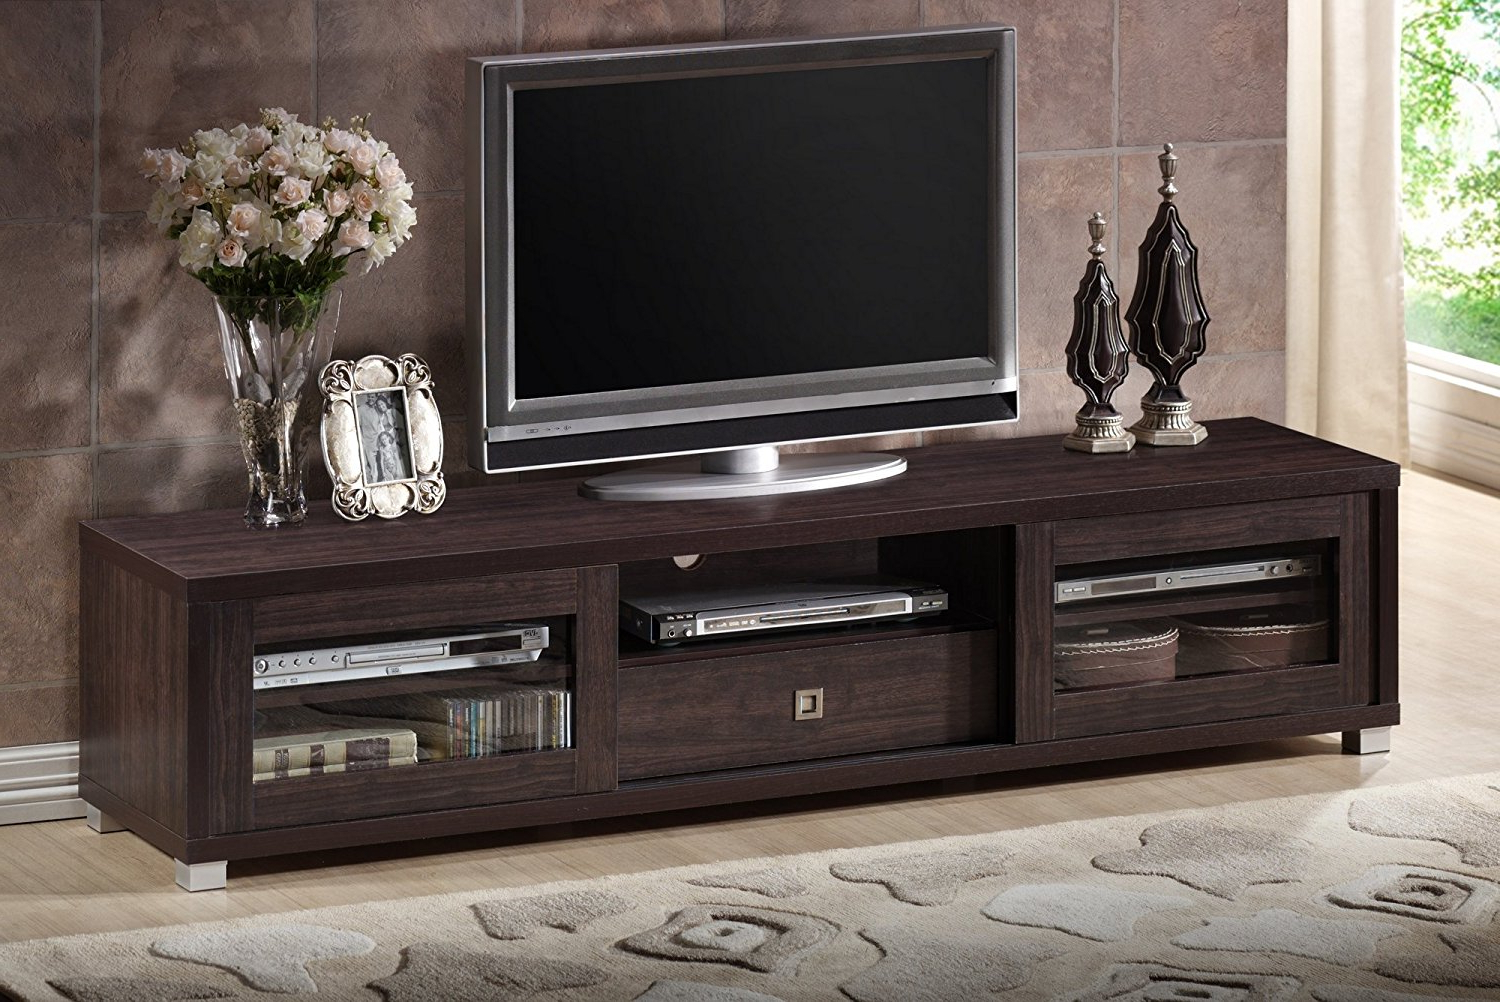 Coolest Dark Wood Tv Stand Amazon: Wholesale Interiors – Furnish With Regard To Most Recent Dark Wood Tv Stands (View 7 of 20)